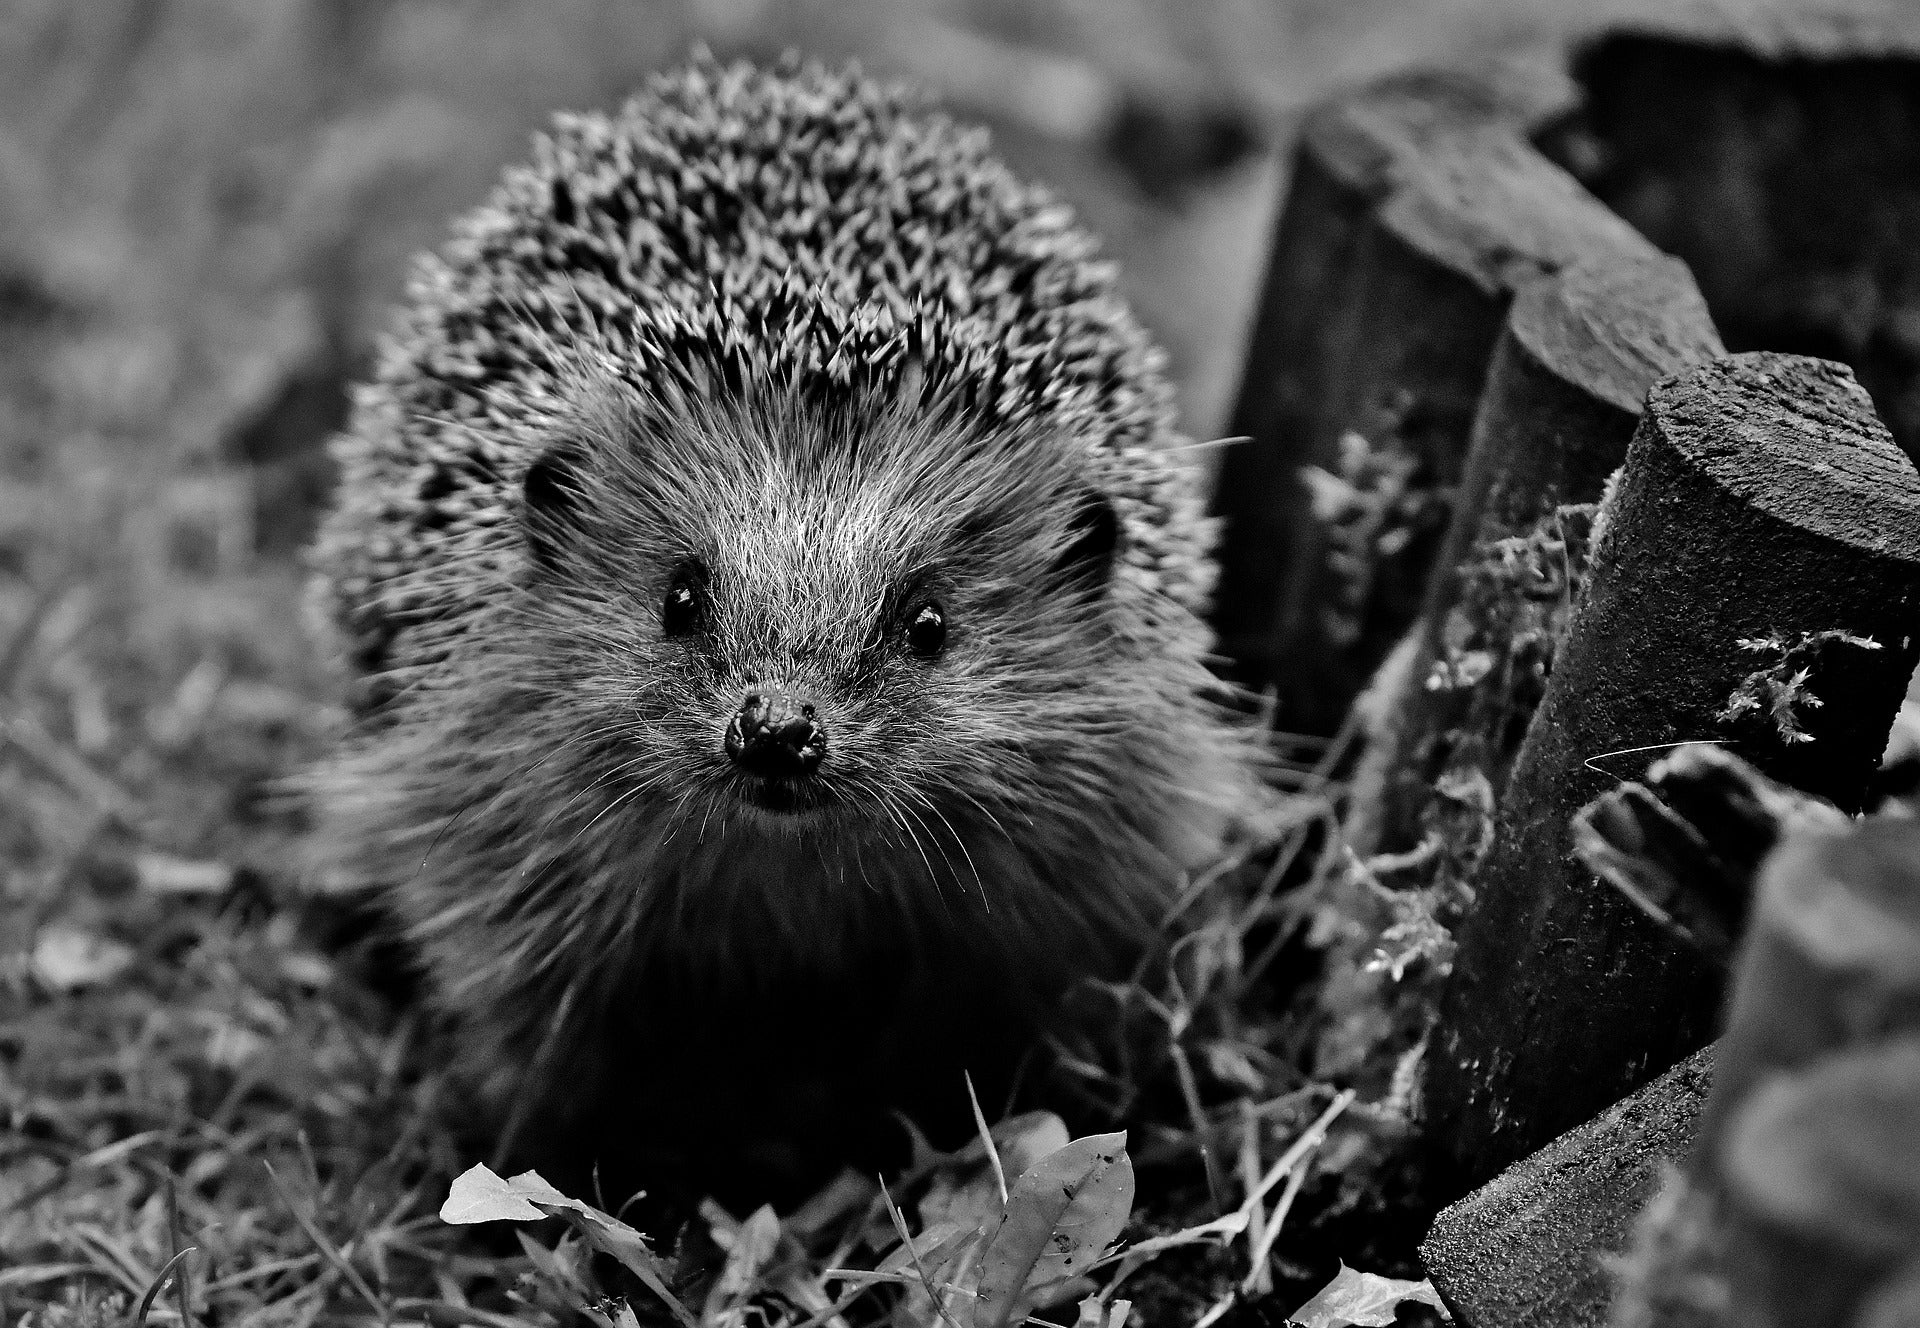 Hedgehog safety for bonfire night